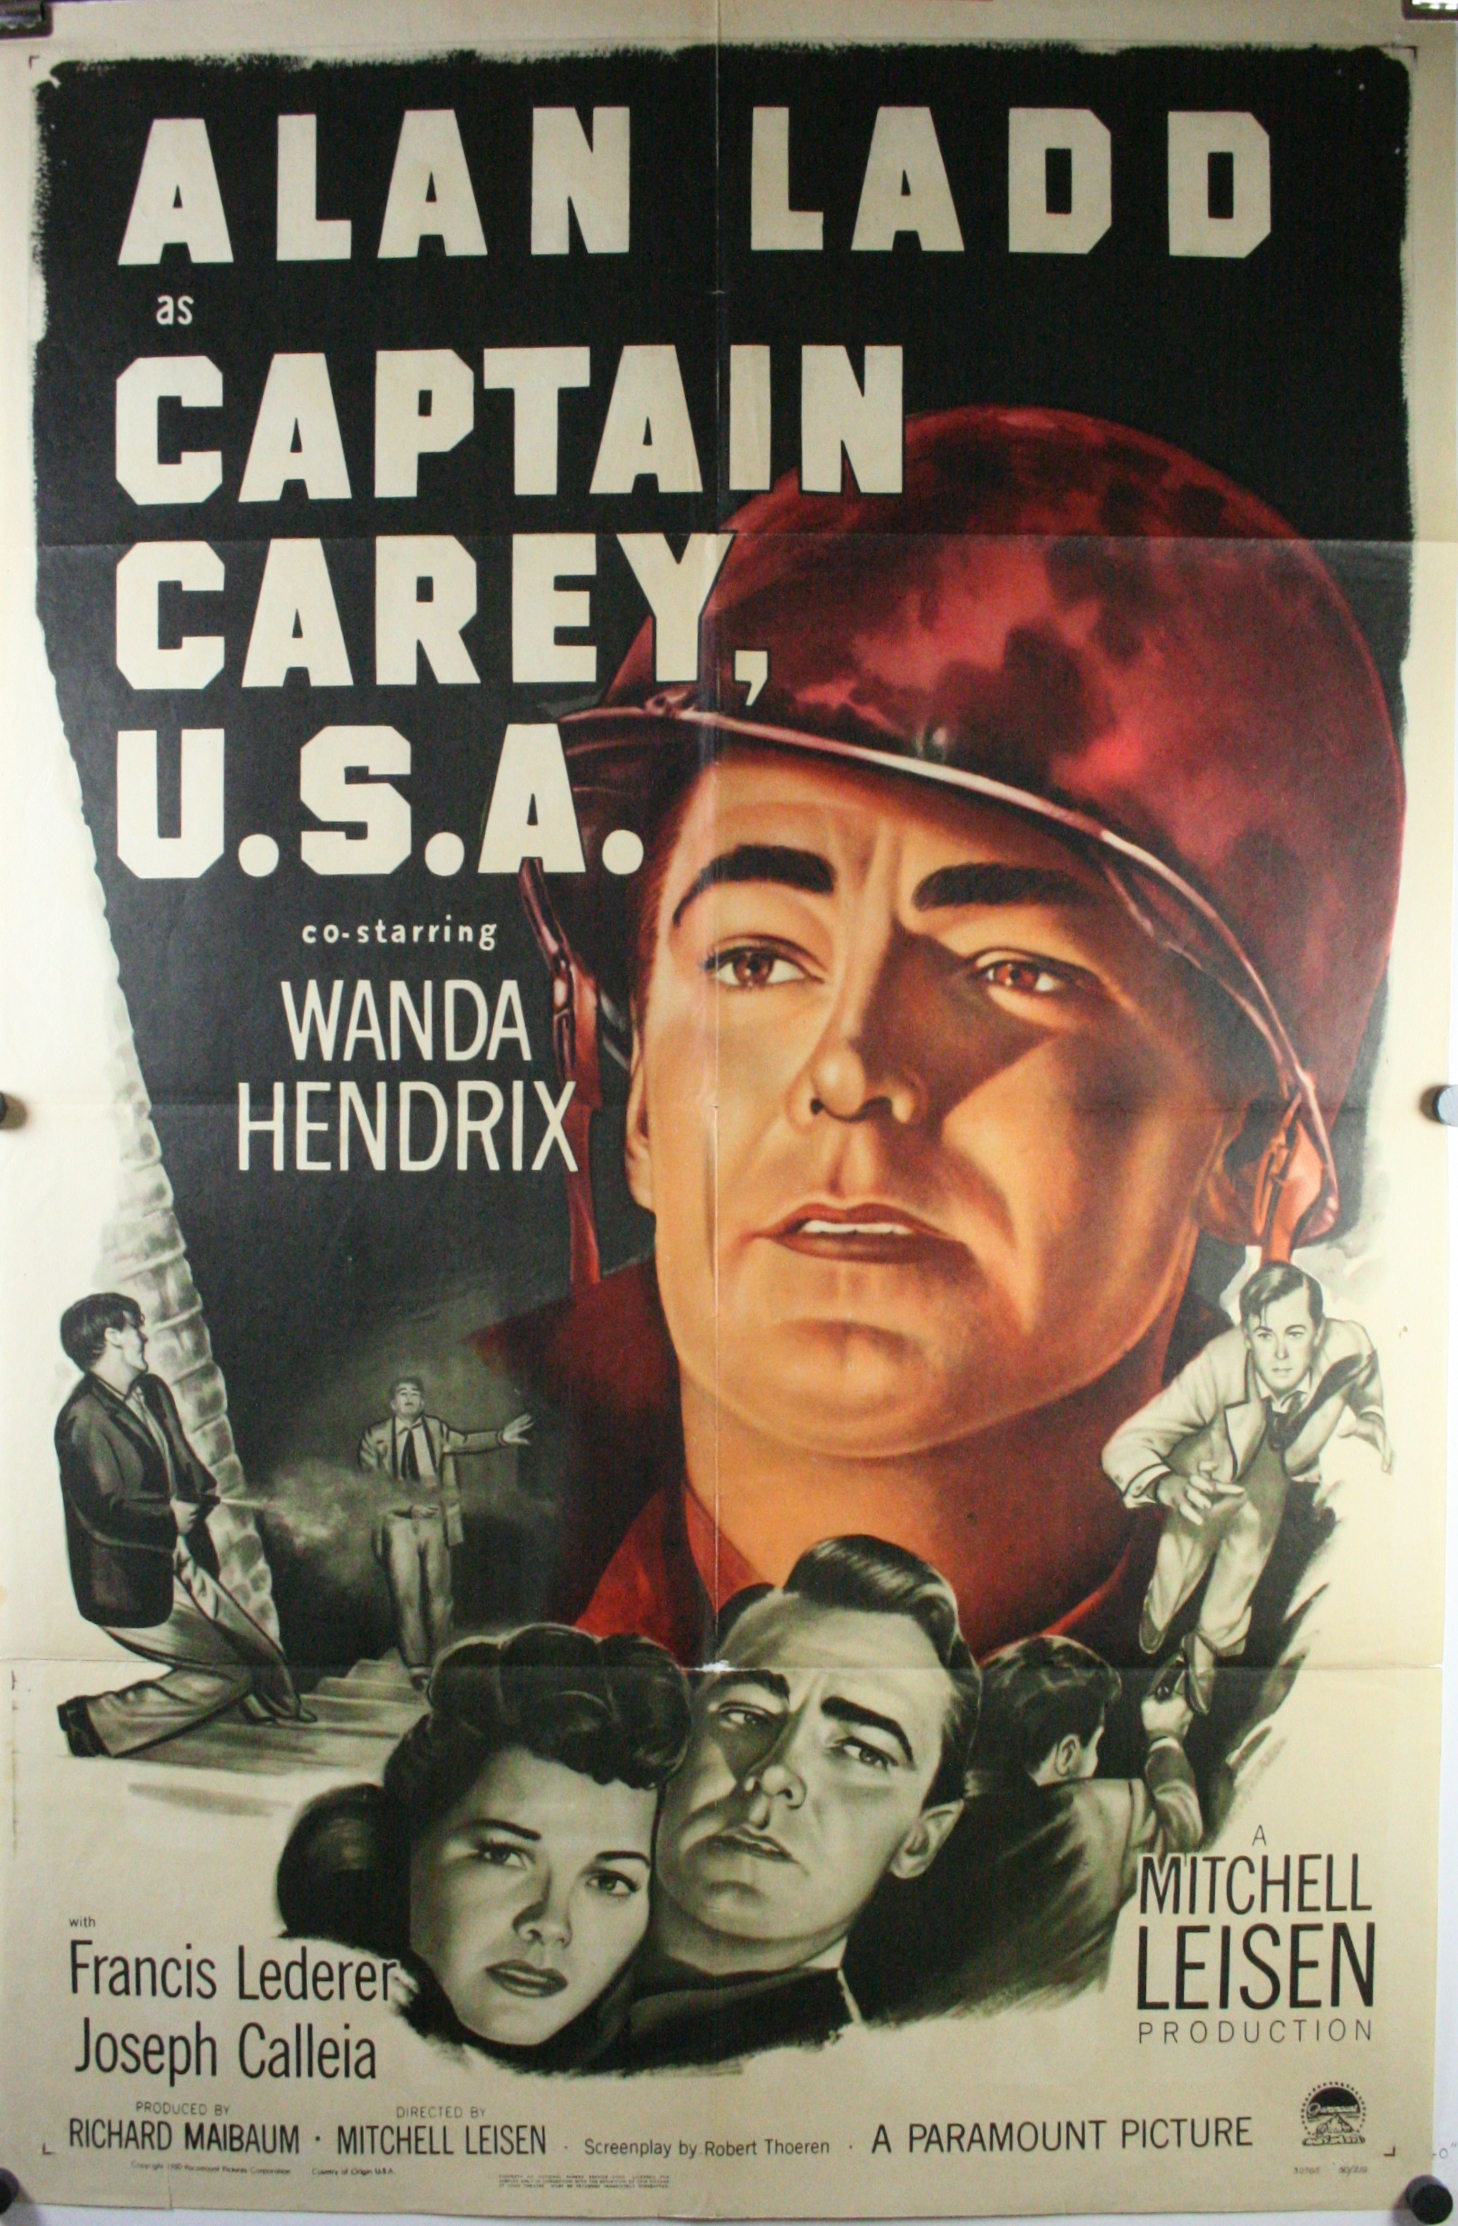 CAPTAIN CAREY